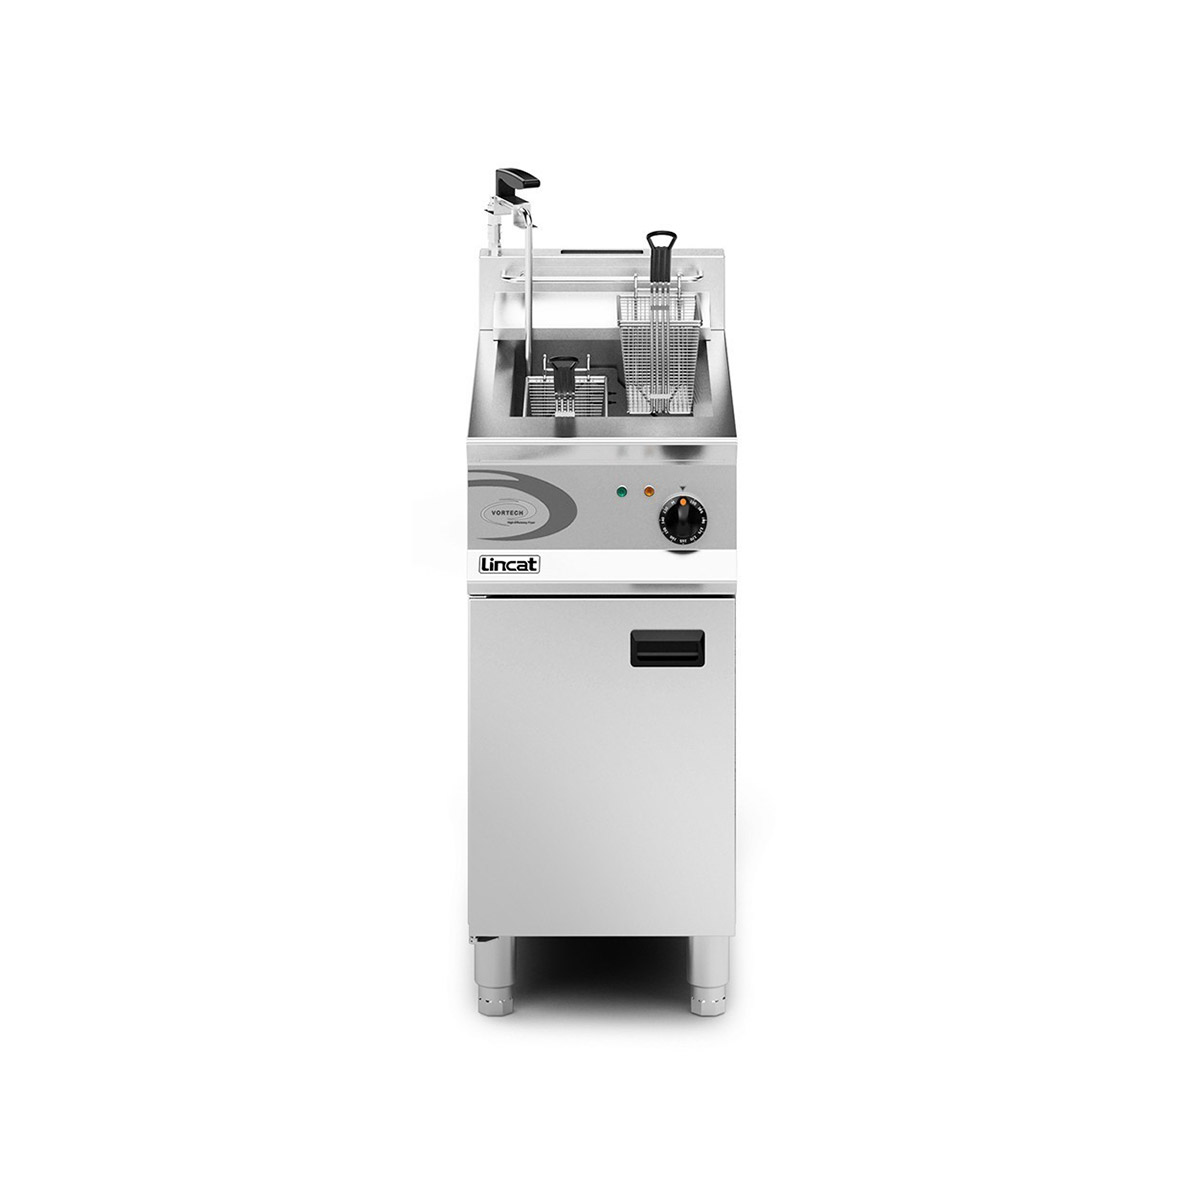 Lincat Vortech High Efficiency Gas Fryer Model: OG8115/OP/P (Propane)